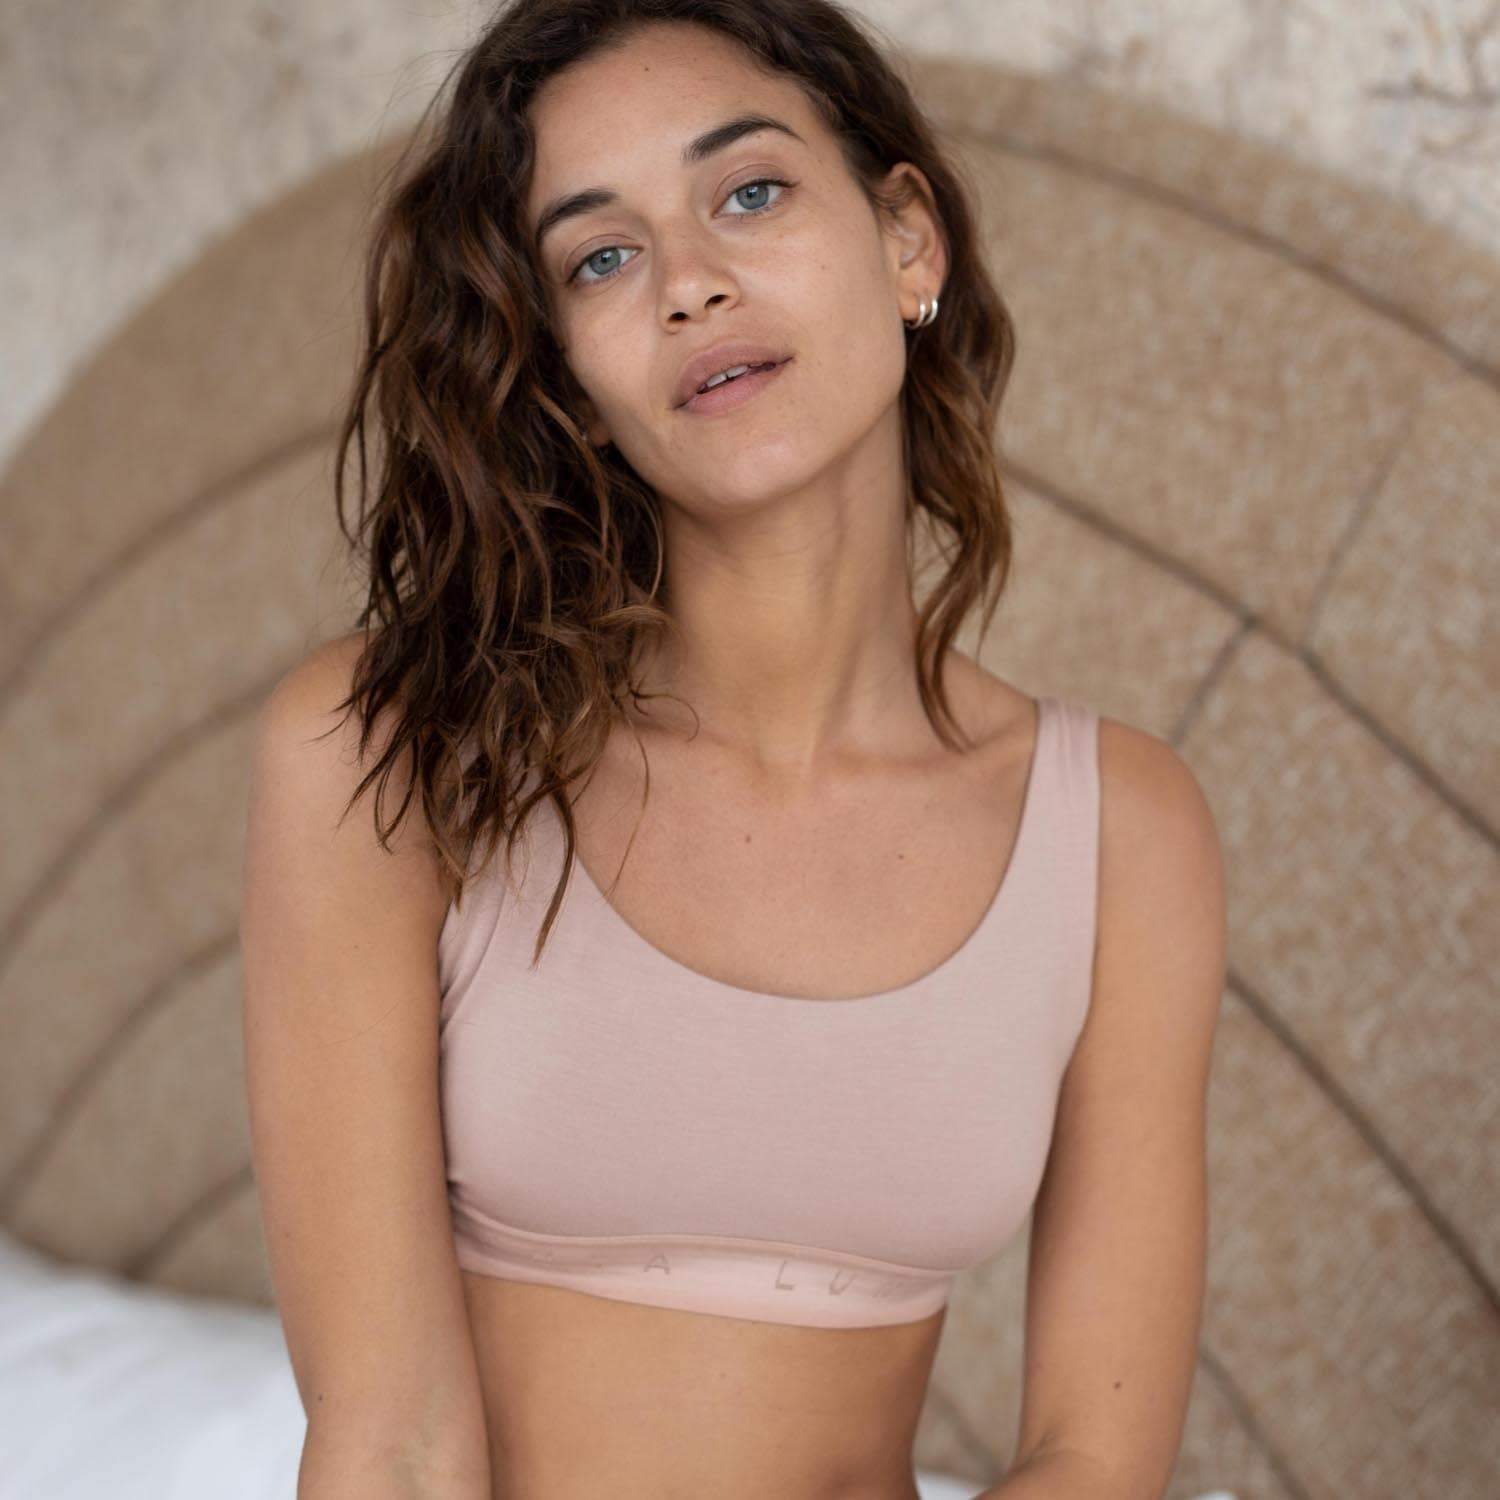 Lunya Sleepwear Supportive Modal Well Rounded Bralette - #Bare/Bare